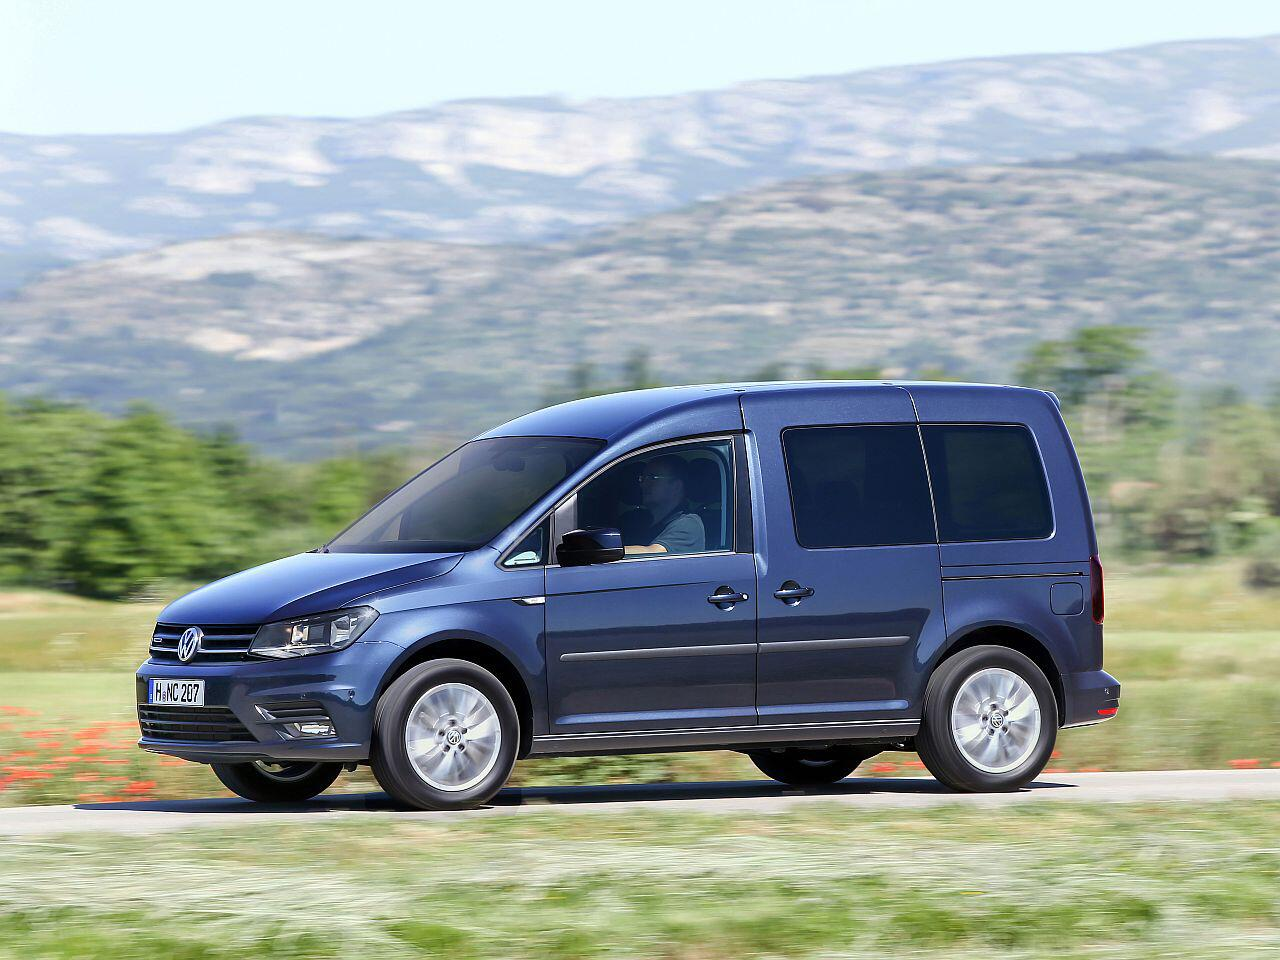 Bild zu Utilities: VW Caddy